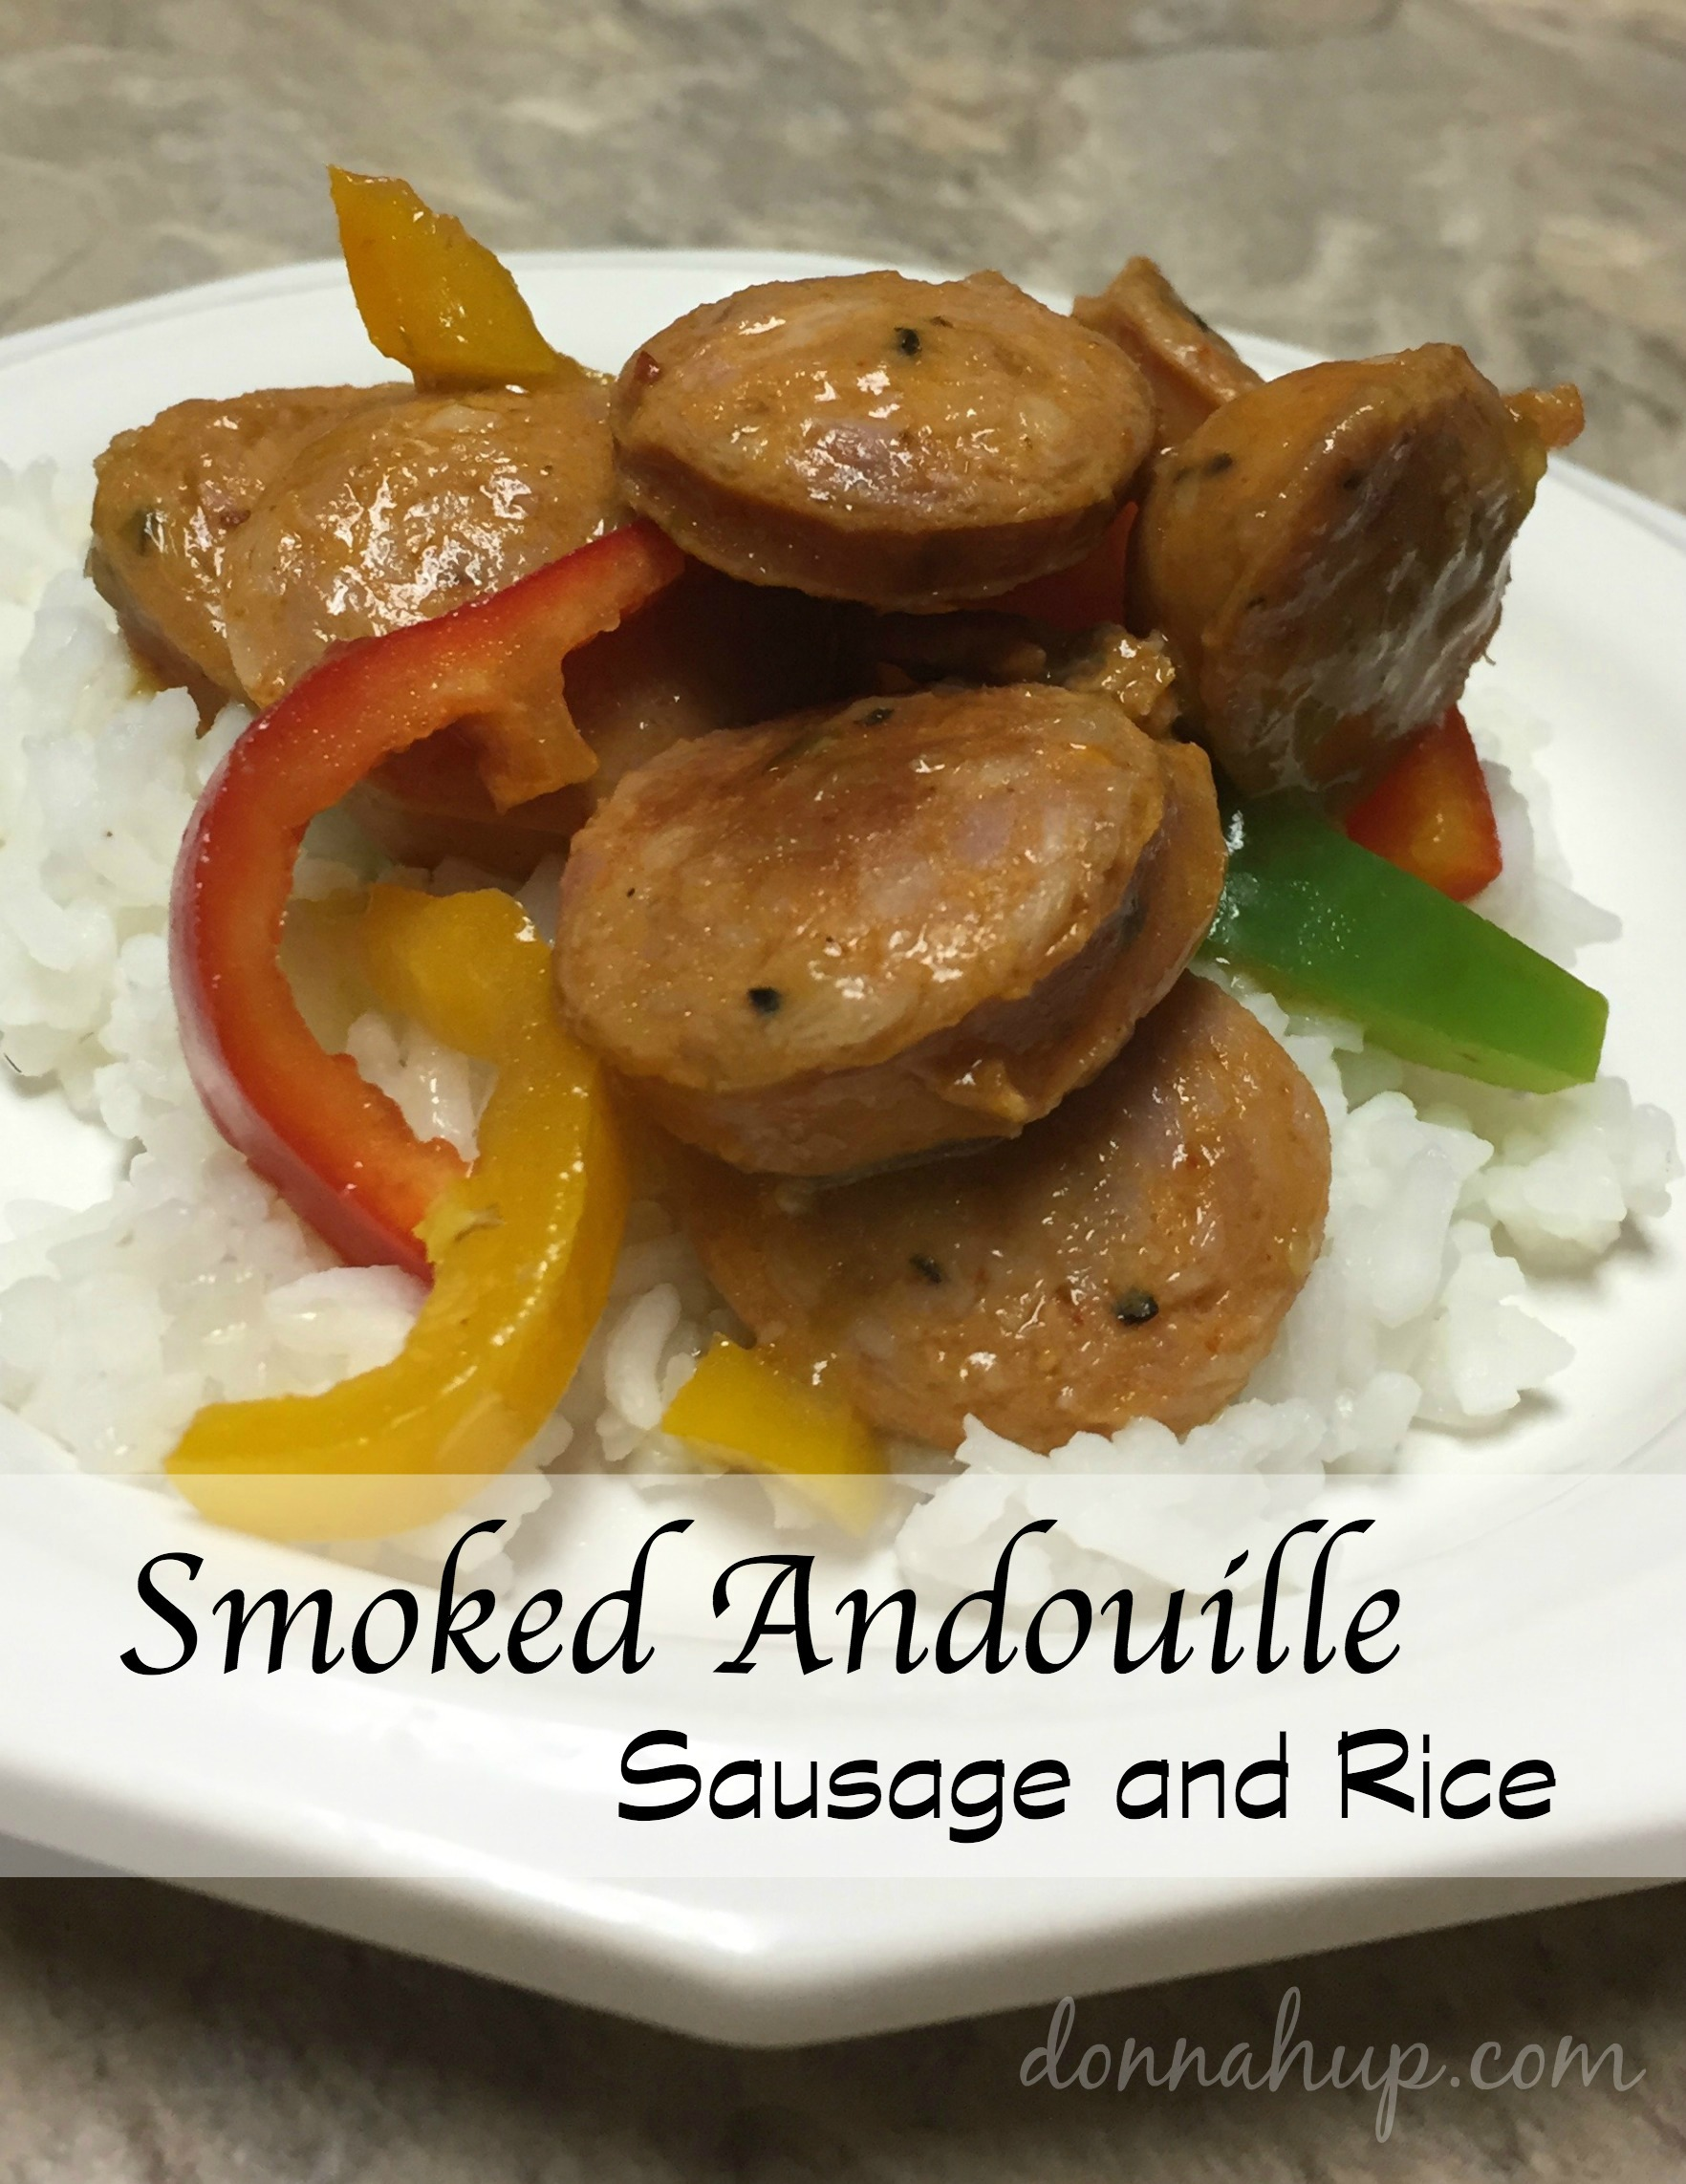 Smoked Andouille Sausage and Rice